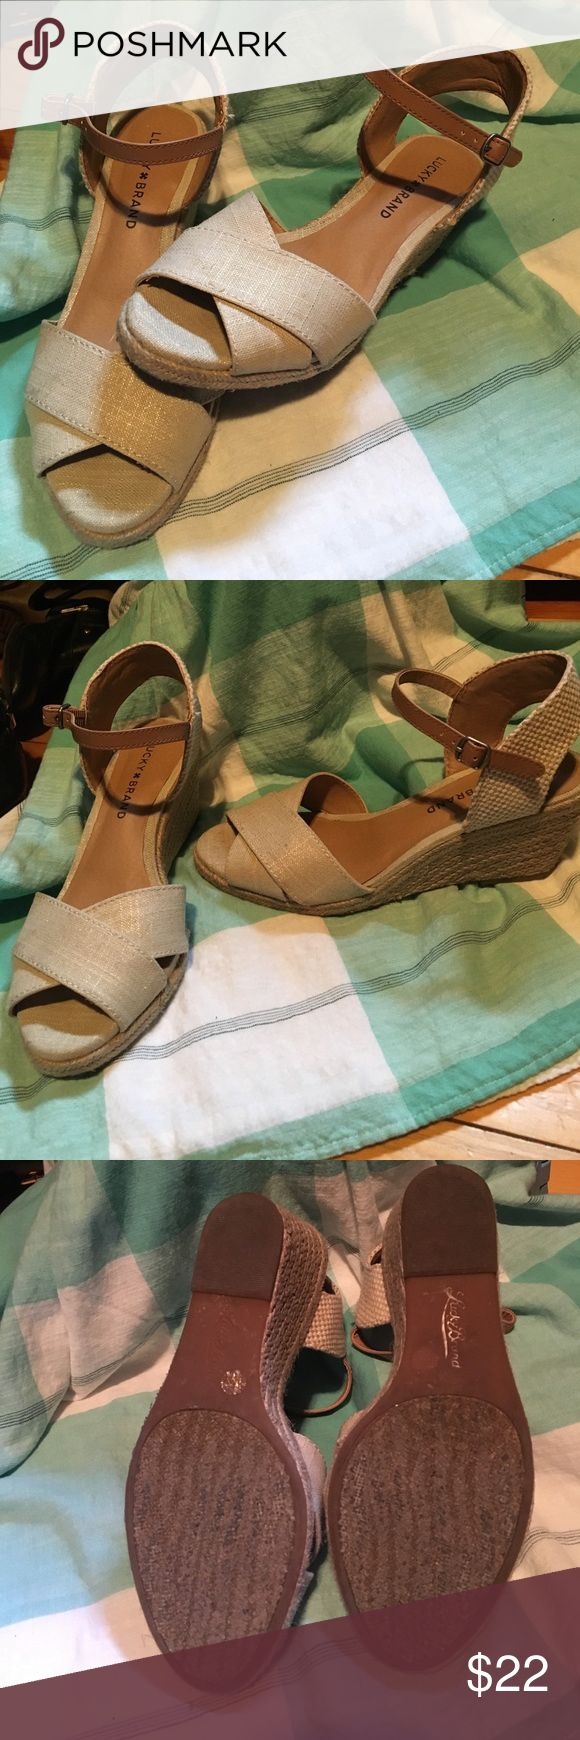 """Neutral espadrilles Perfect condition. Lucky 🍀 Brand espadrilles. 2 1/2"""" heel.  Worn once for about an hour.   Has a slight metallic sheen to them.  Box included Lucky Brand Shoes Espadrilles"""